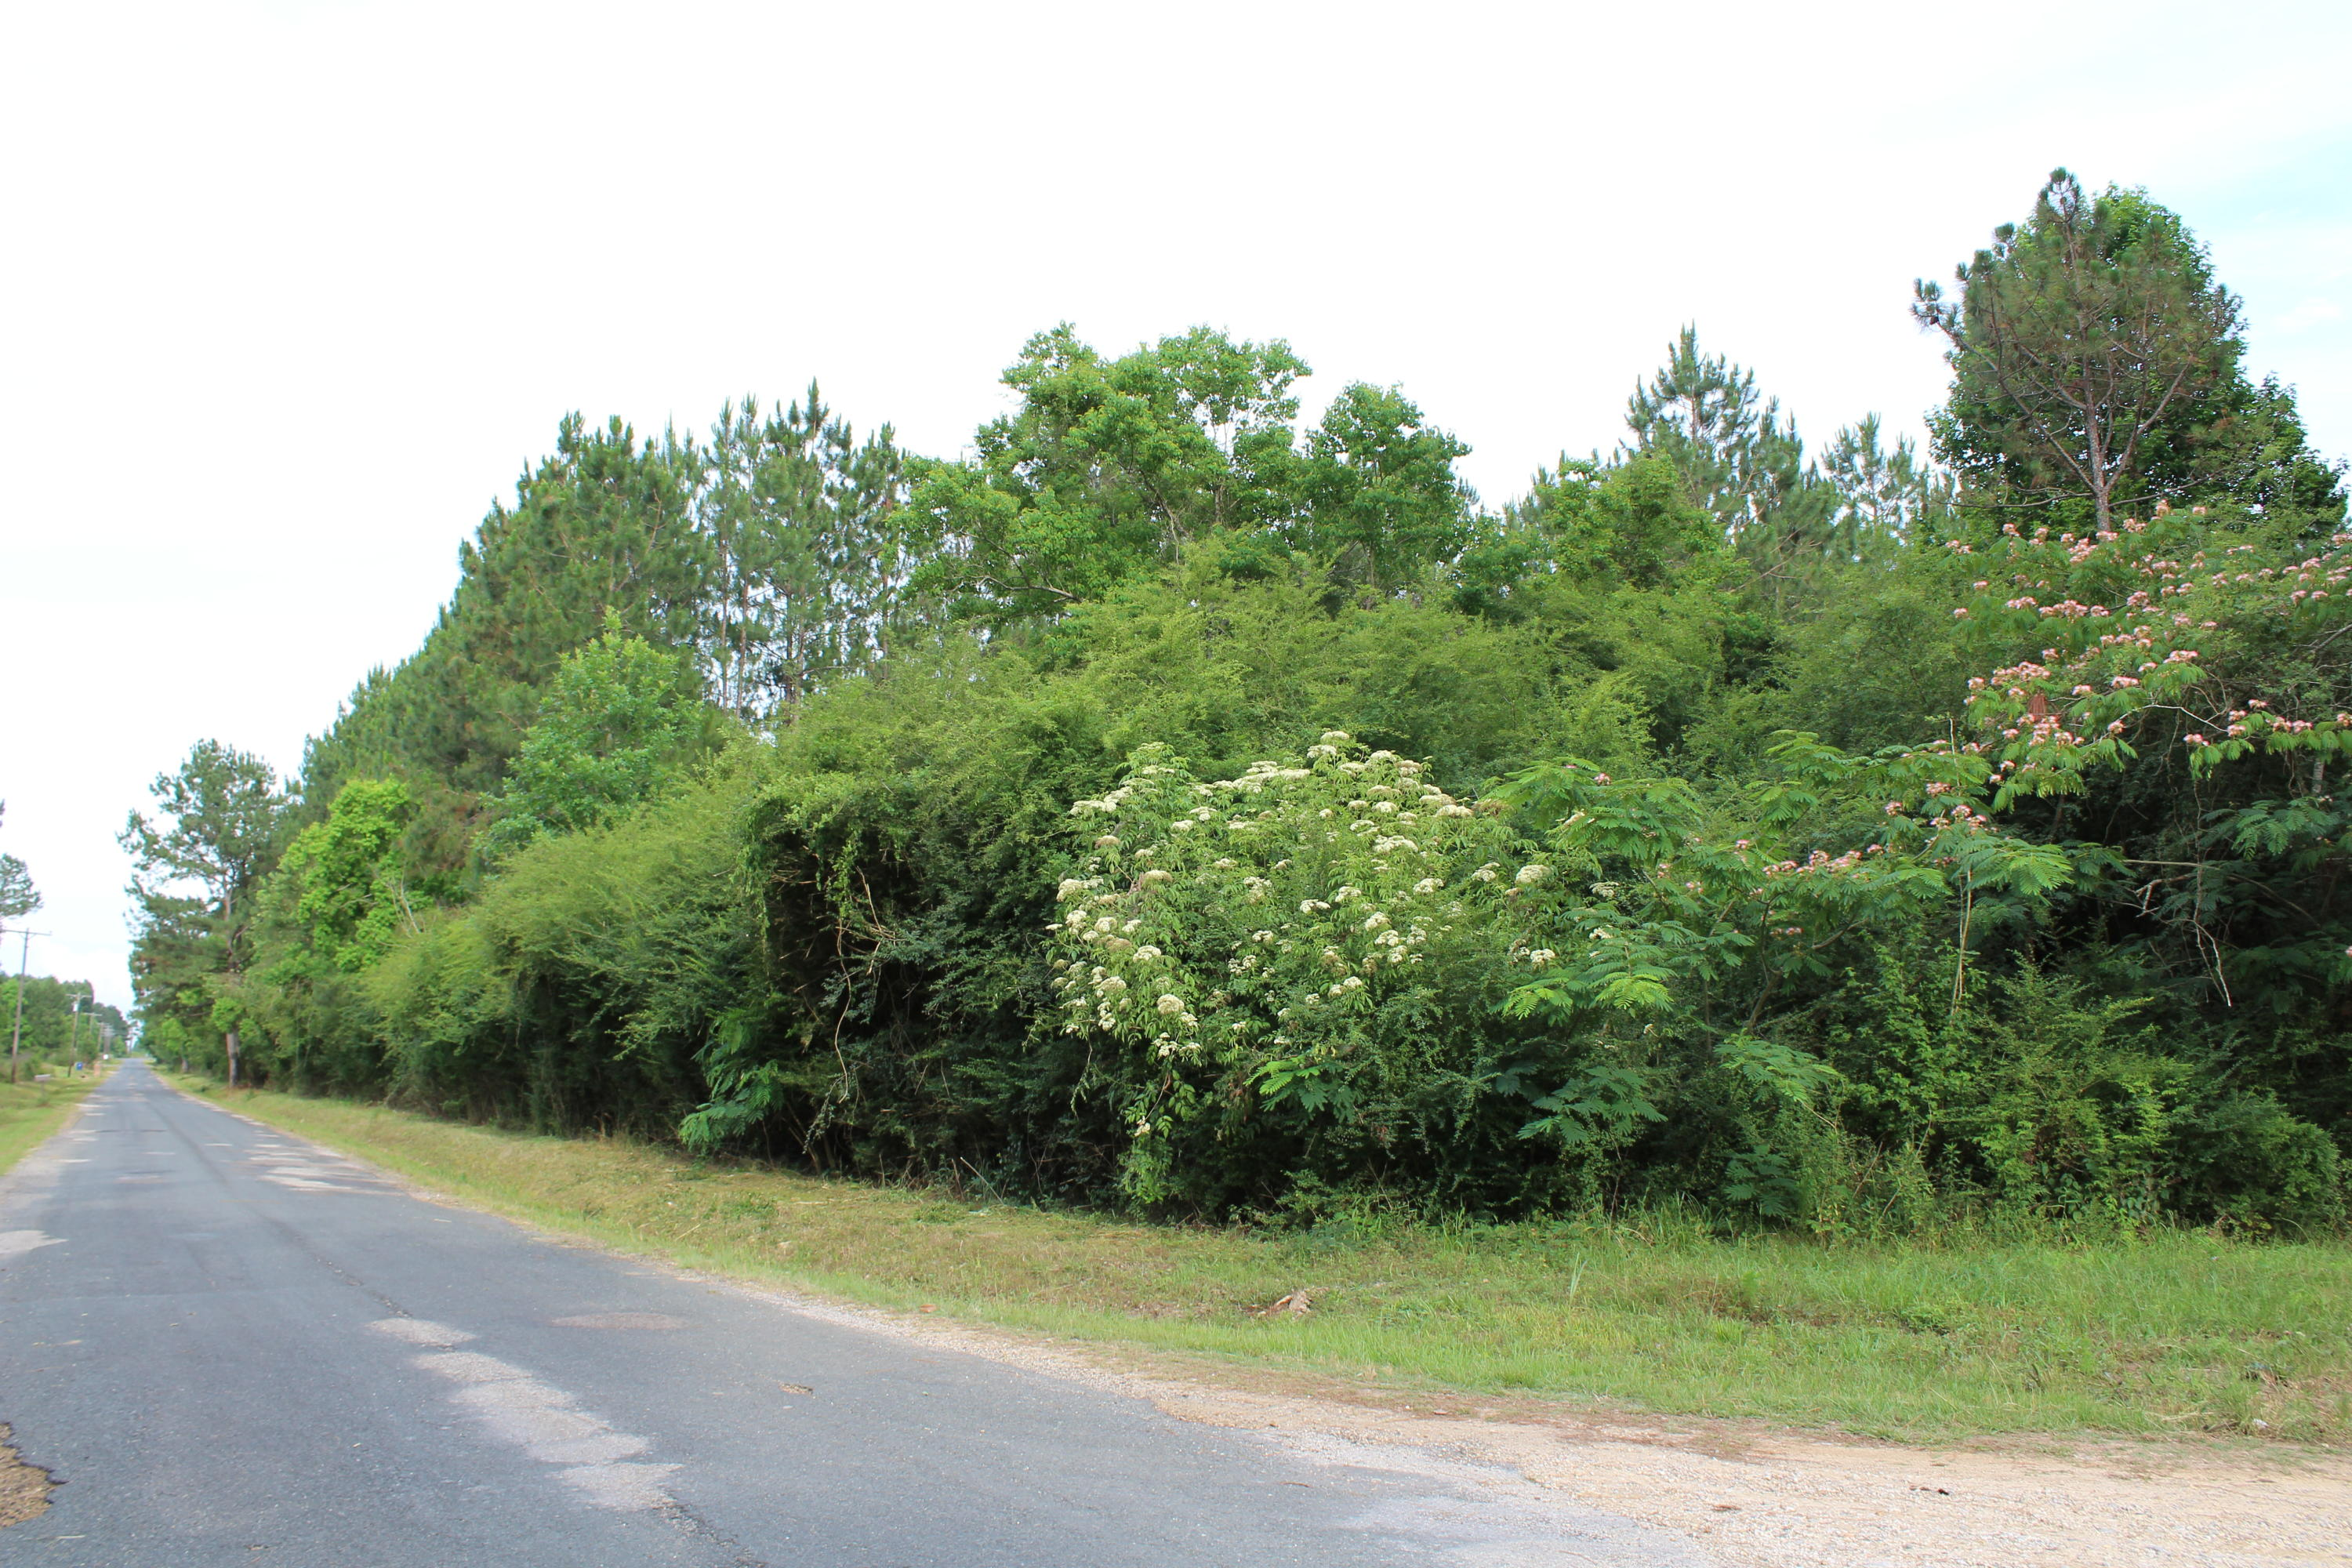 DeRidder land for sale,  Maul Rd., TBD, DeRidder LA - $320,000